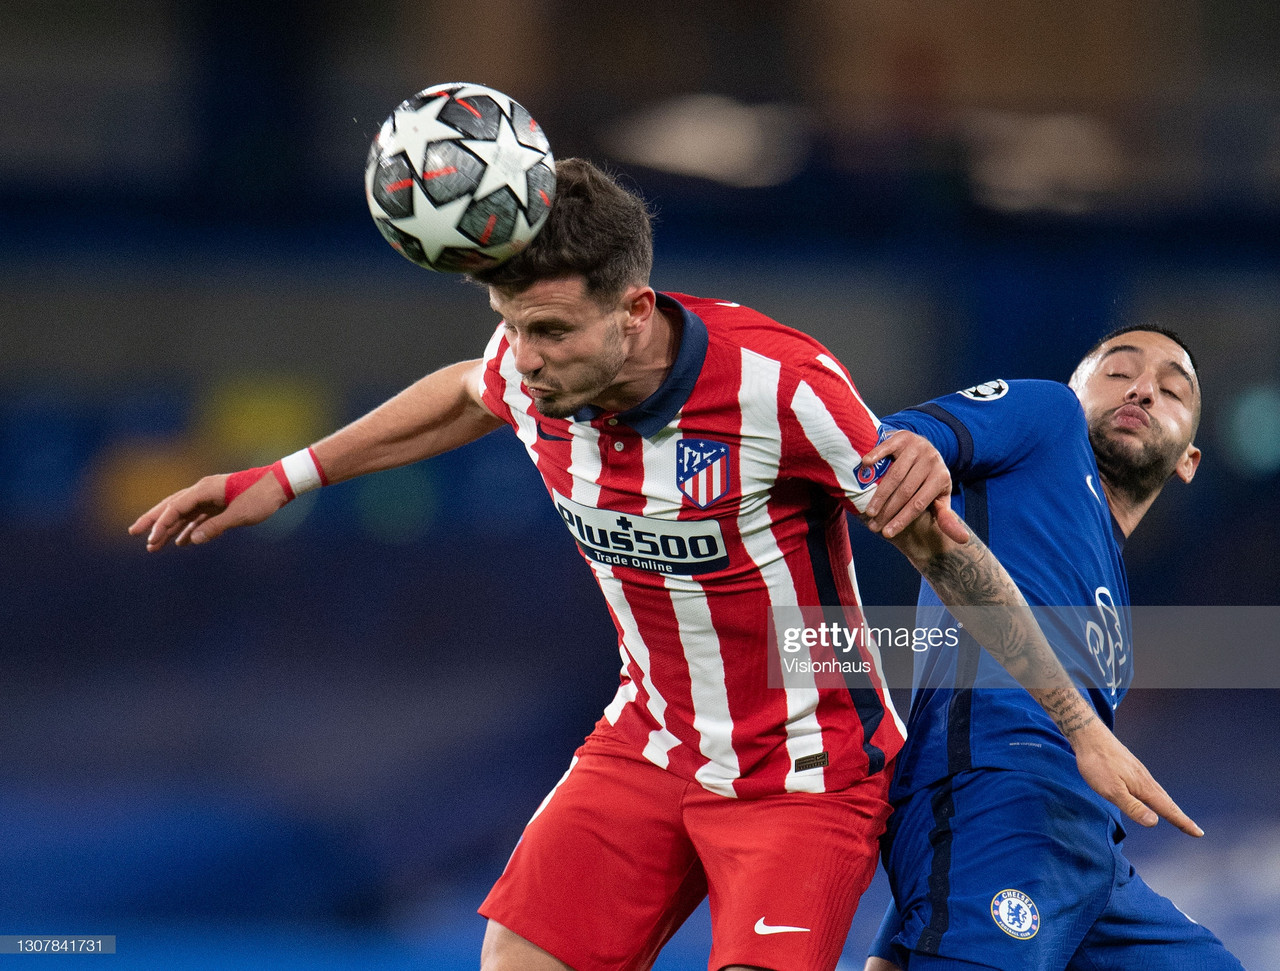 Report: Chelsea looking at bringing in Saul Niguez on loan